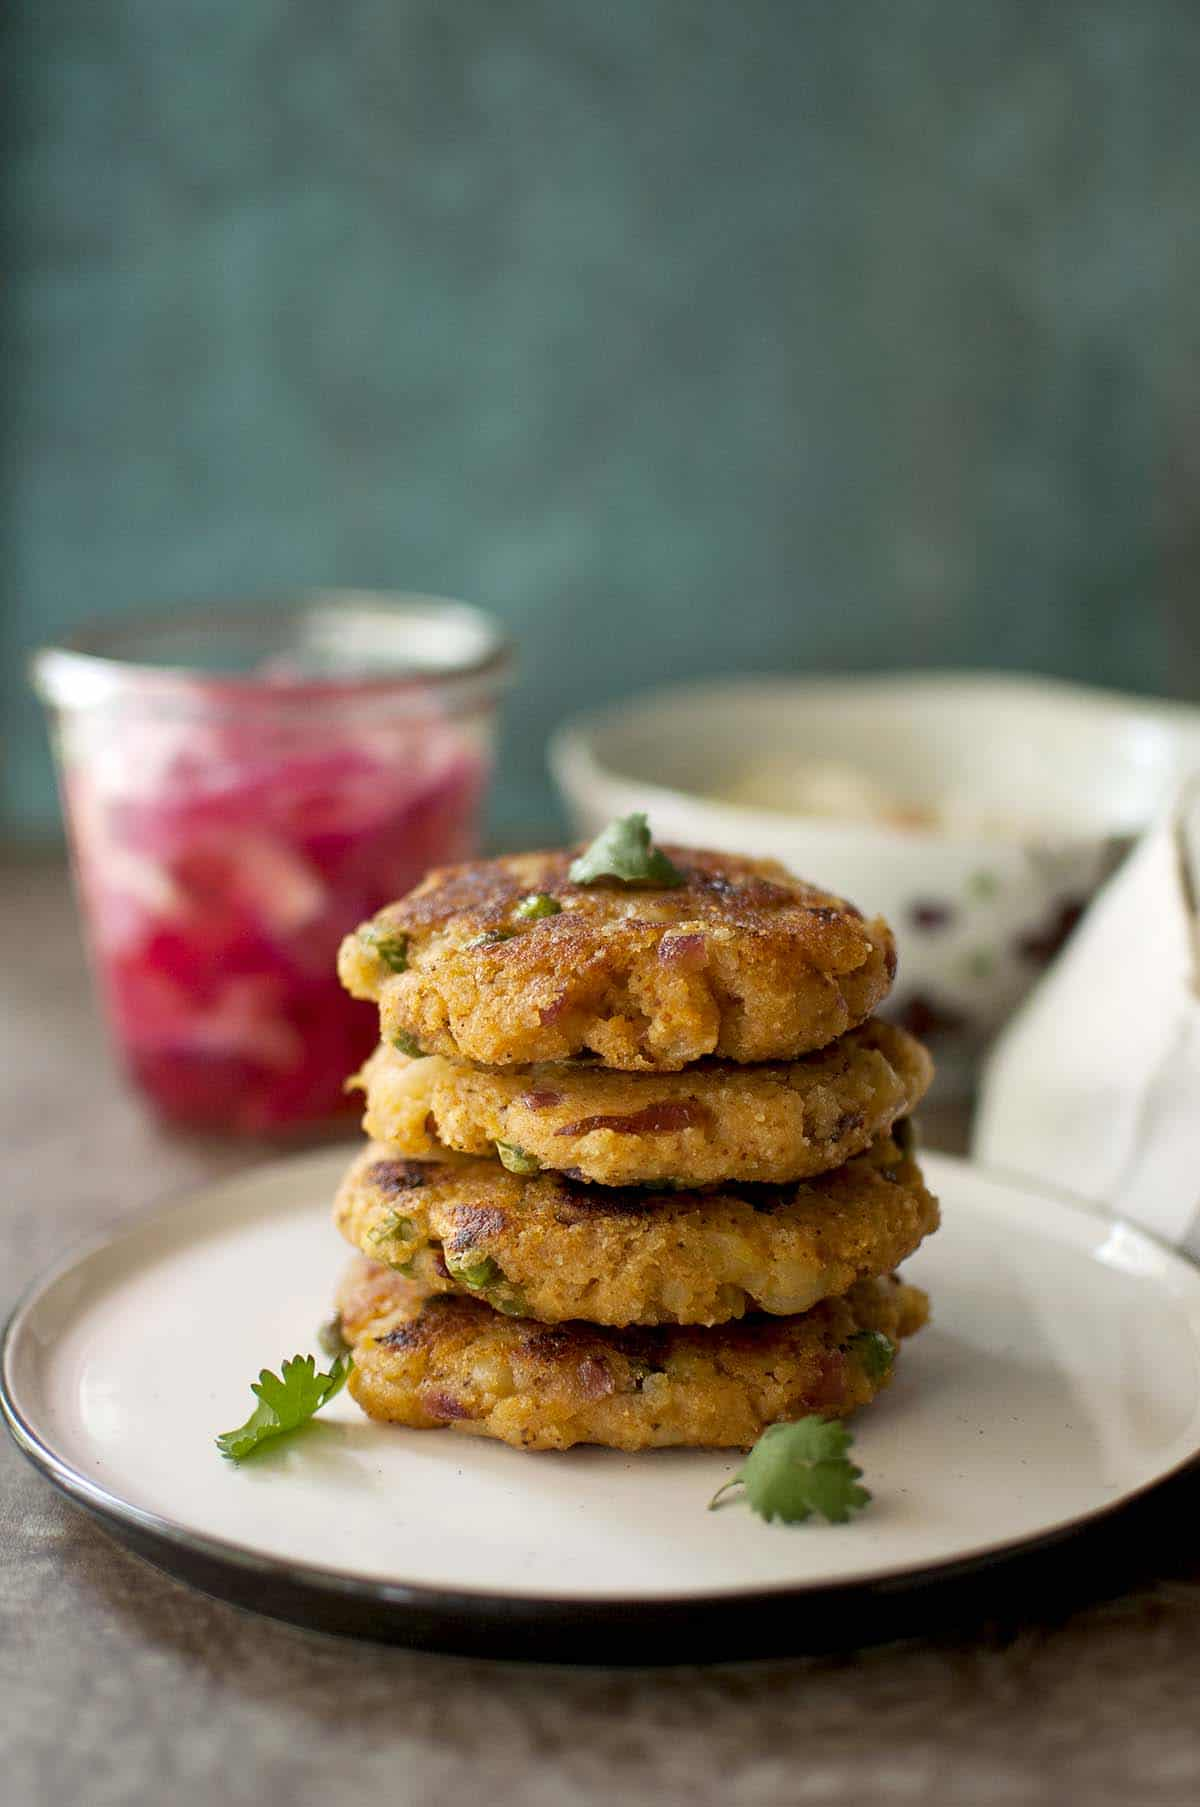 White plate with a stack of round aloo patty